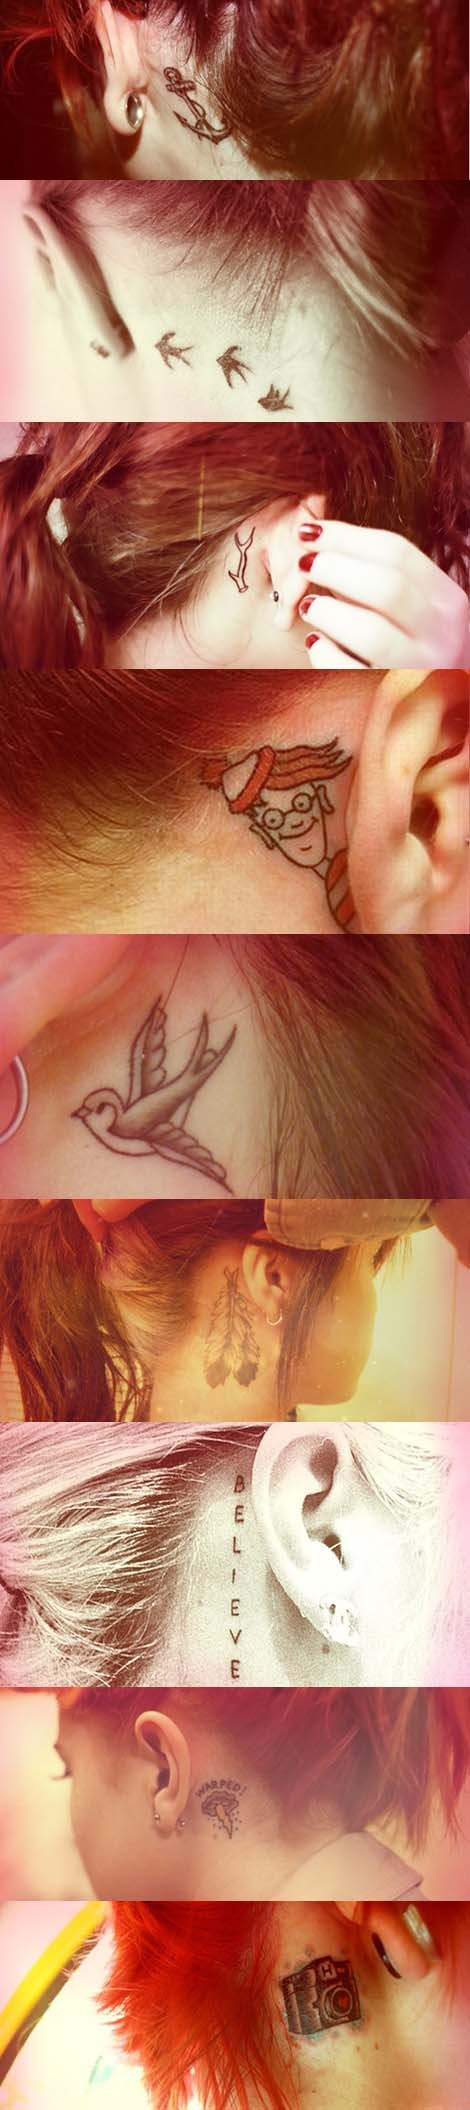 I switched from the feather tattoo to the BELIEVE tattoo and then didn't get either. Was told that itd be too small and would eventually blur together.